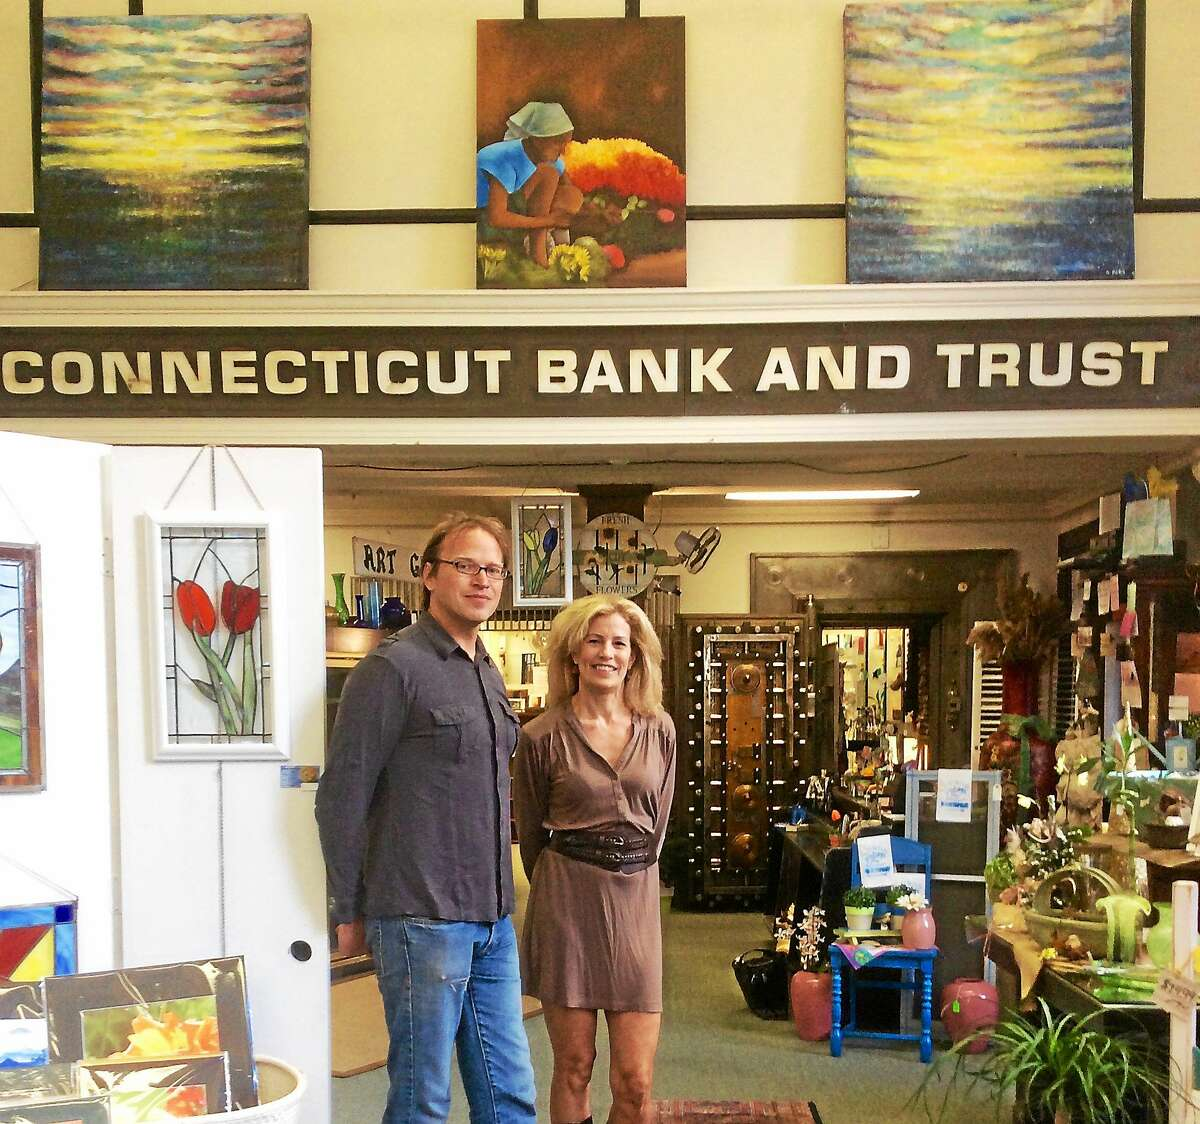 The Old Bank and Art Gallery in East Hampton is housed in the old Connecticut Bank and Trust building and the wealth of eclectic and hand-crafted items are displayed throughout — even in the old vault.